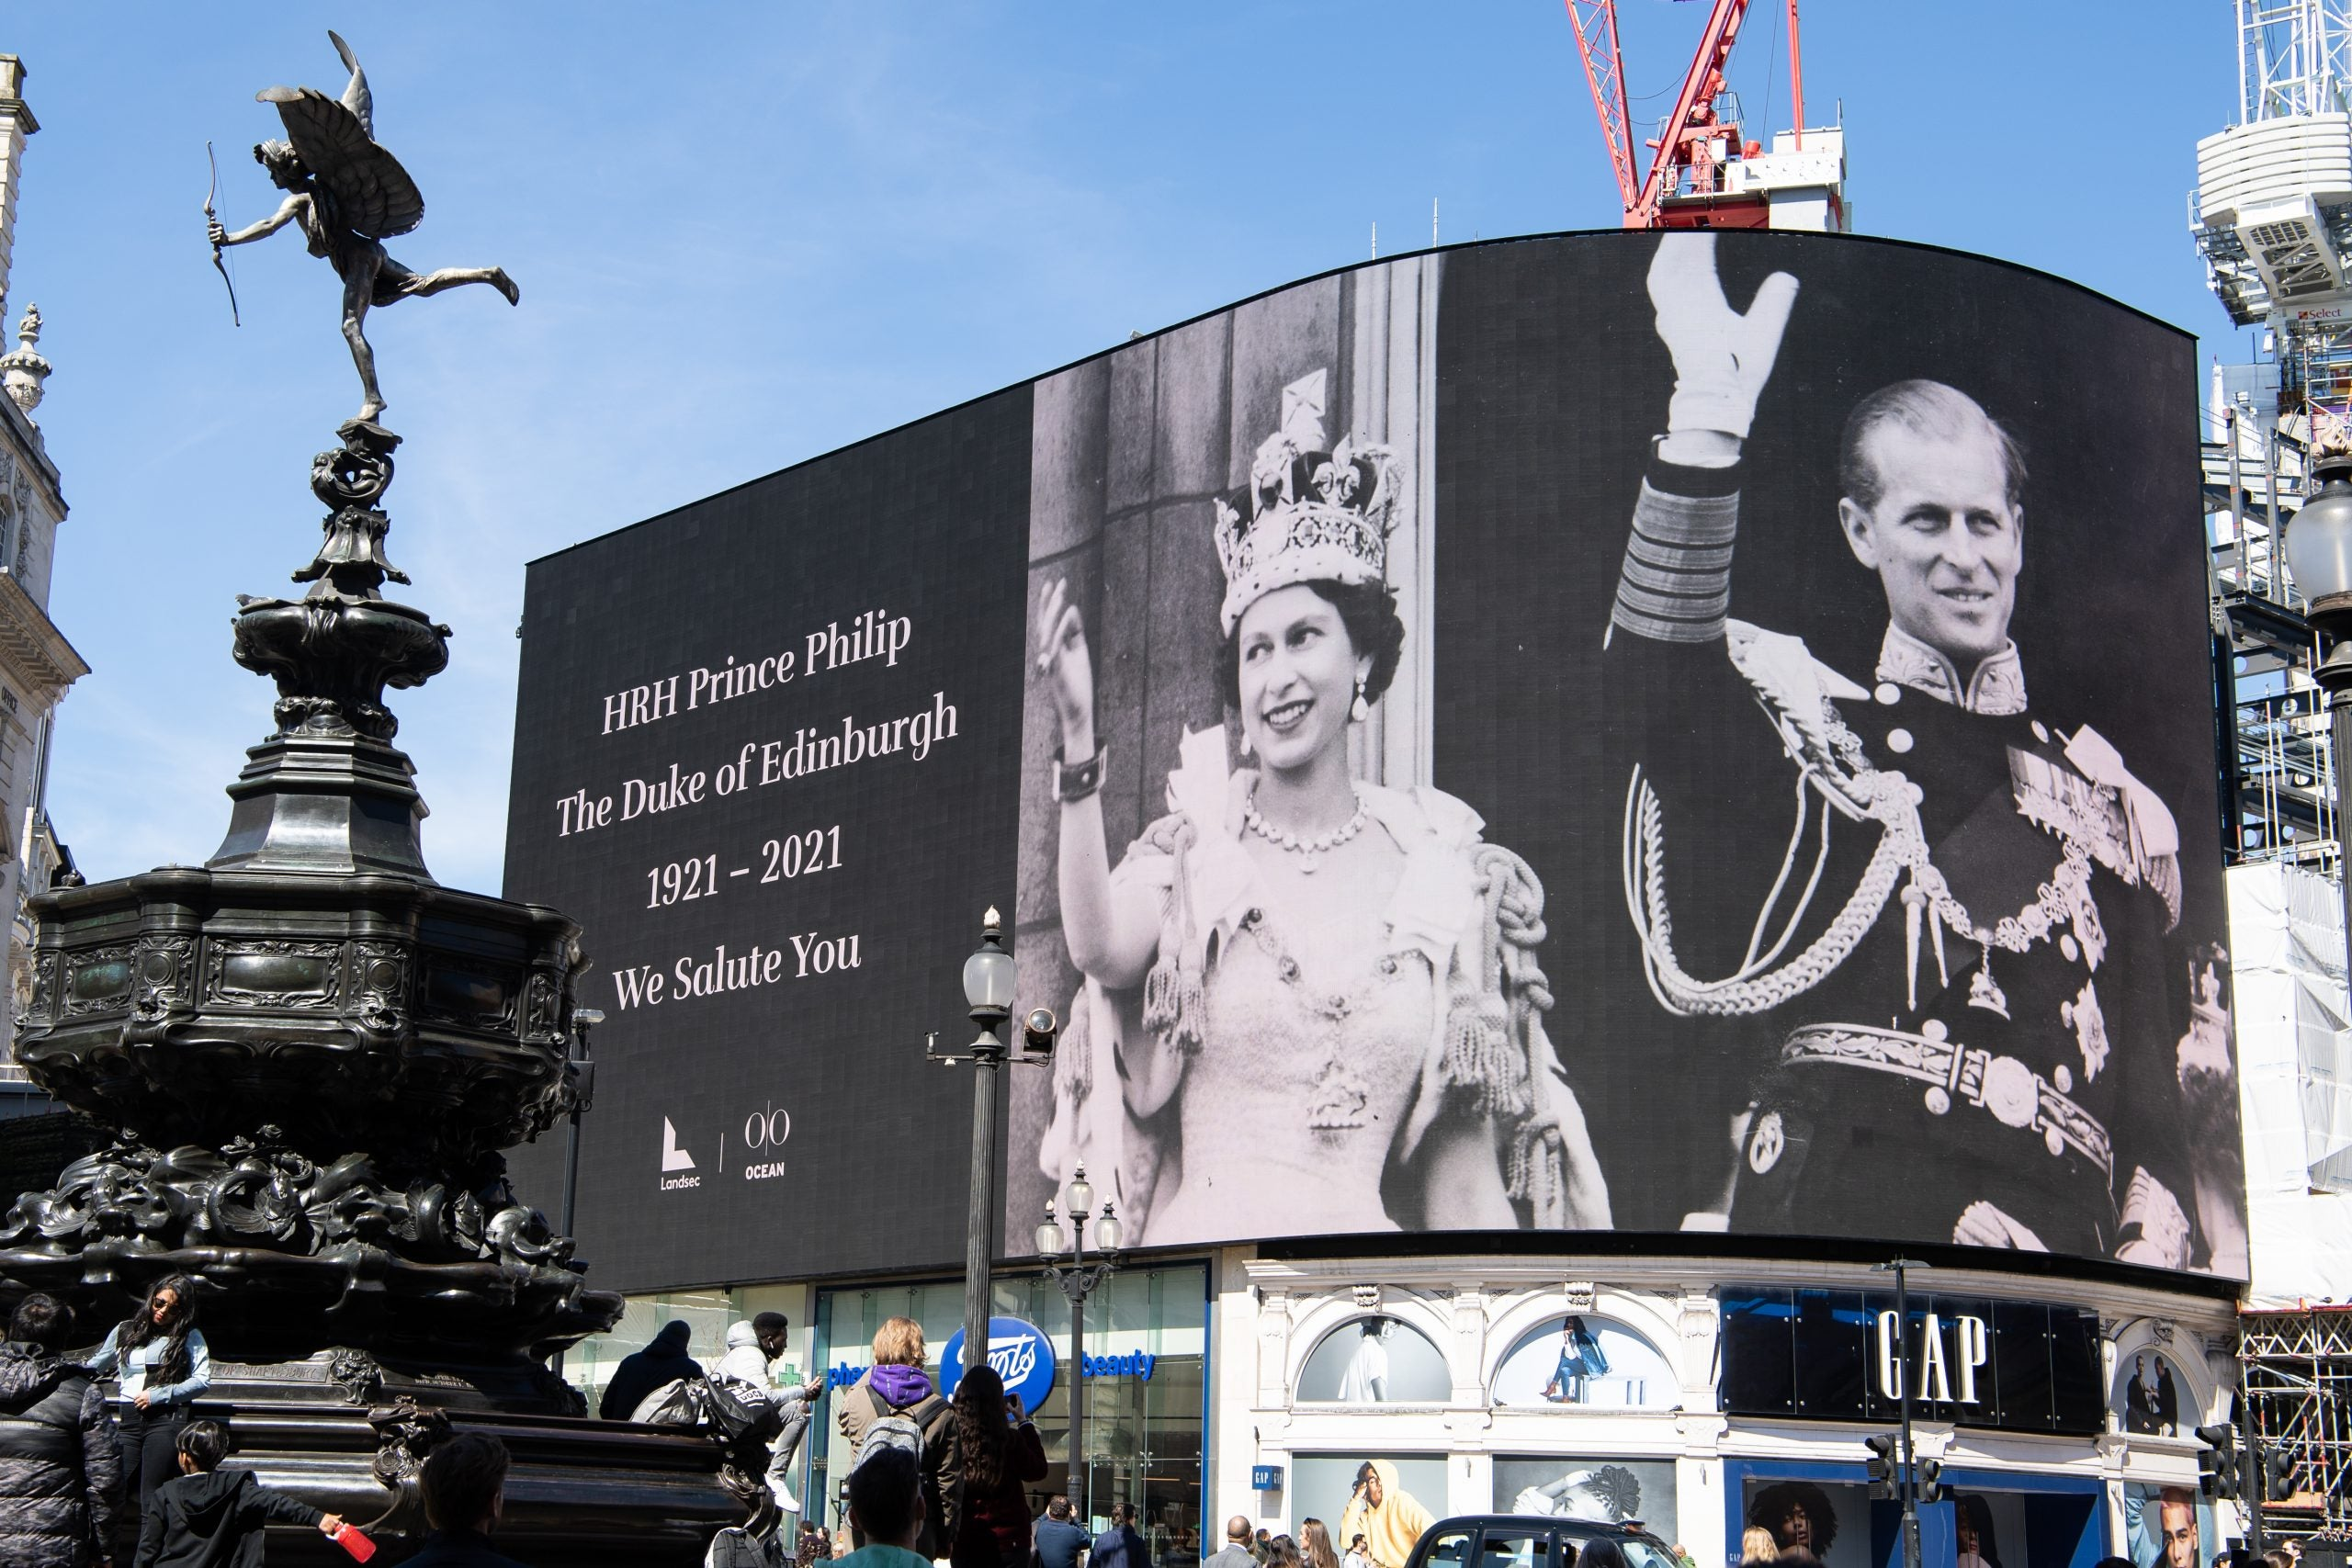 The greatest tribute to Prince Philip is not media panegyrics, but the silence of republicans